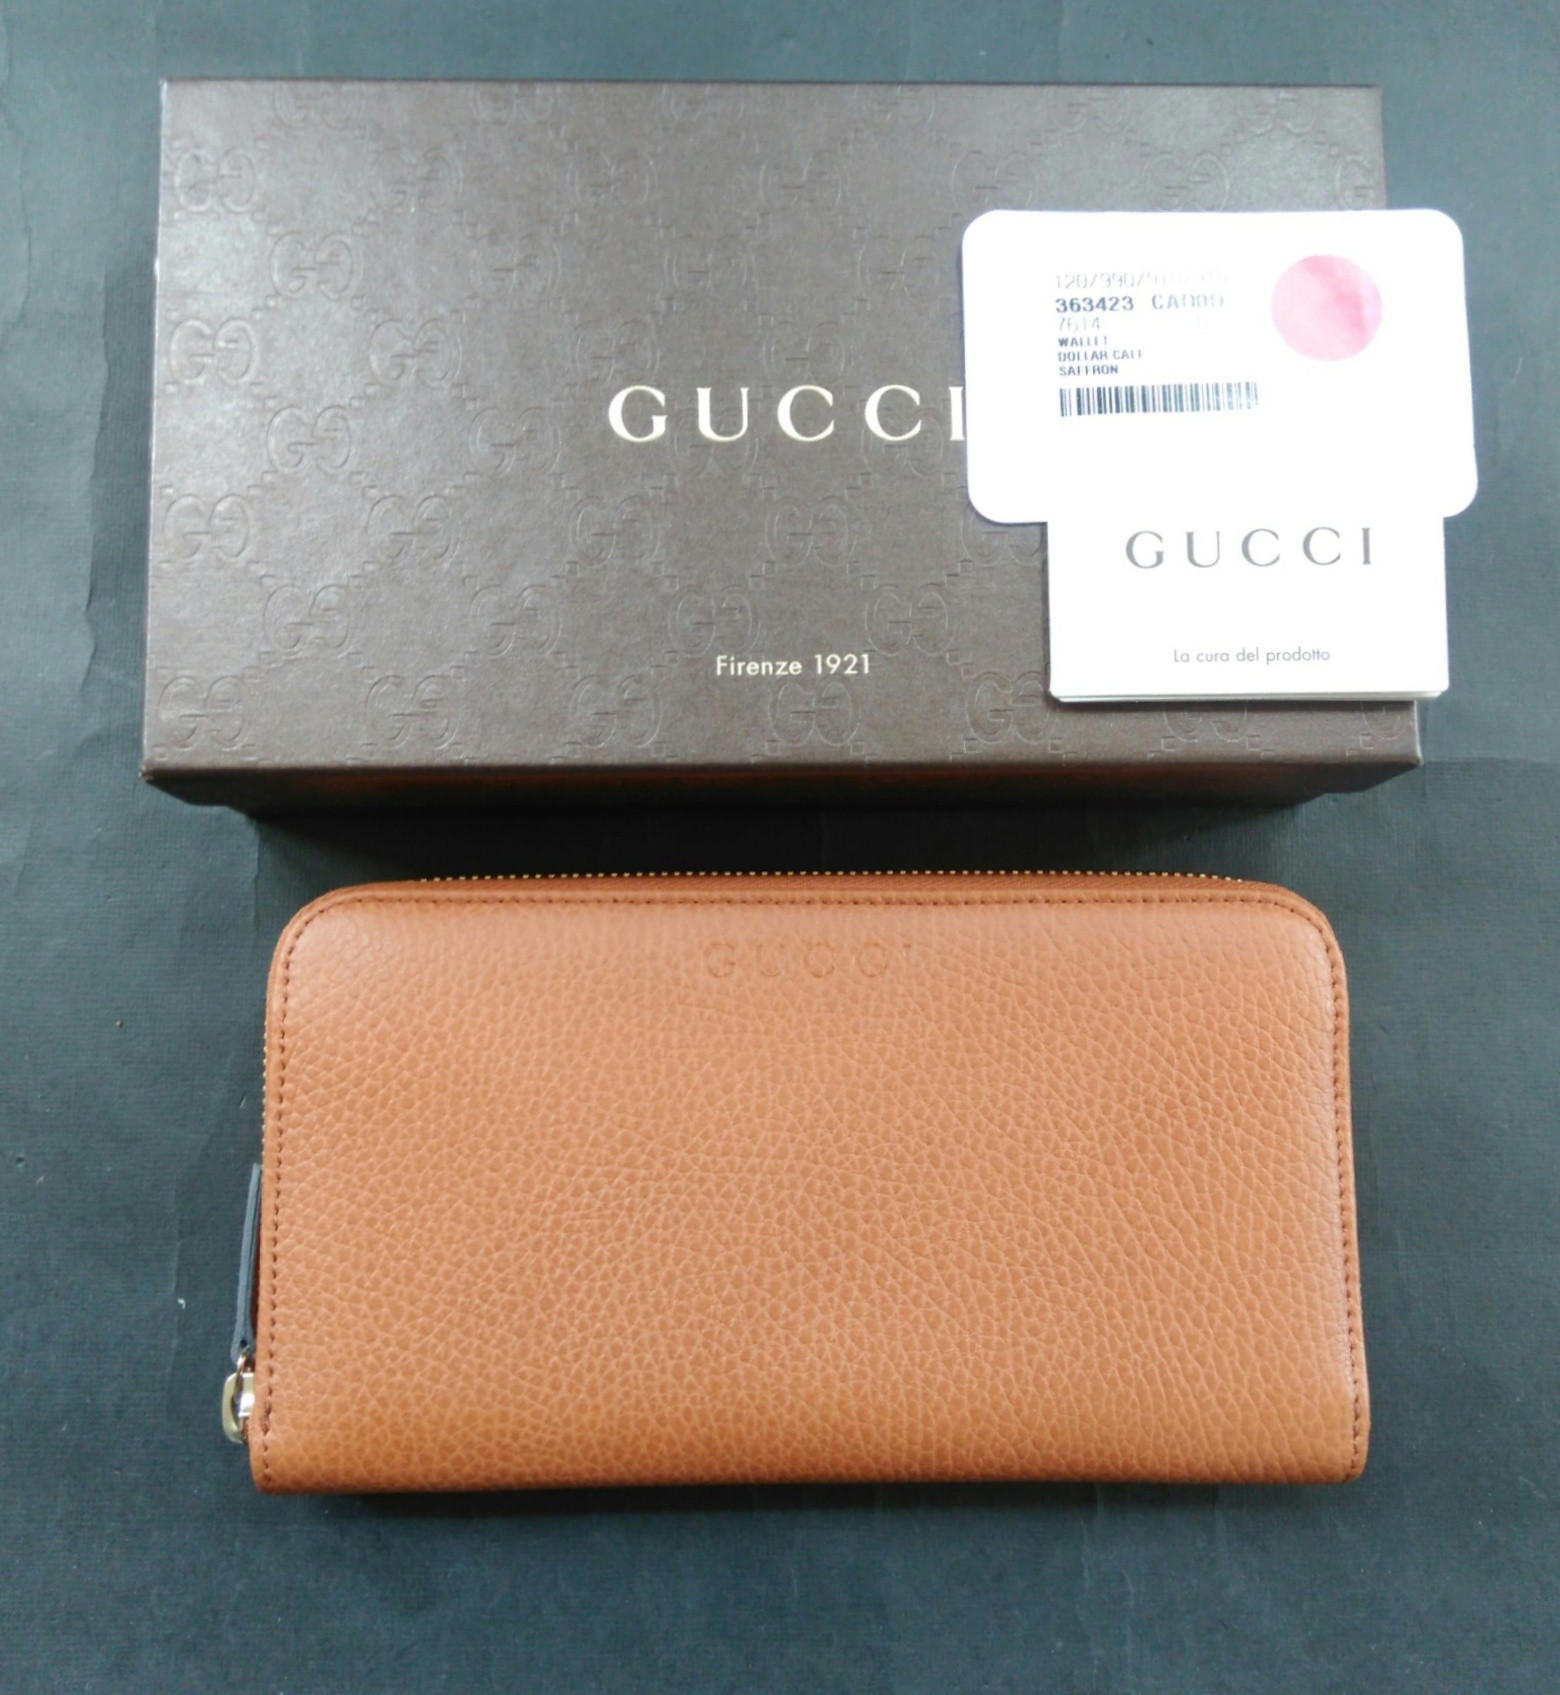 781dcb2b7b5 Prebu.com    Accessories    Women s Wallet    Gucci Wallet Women ...